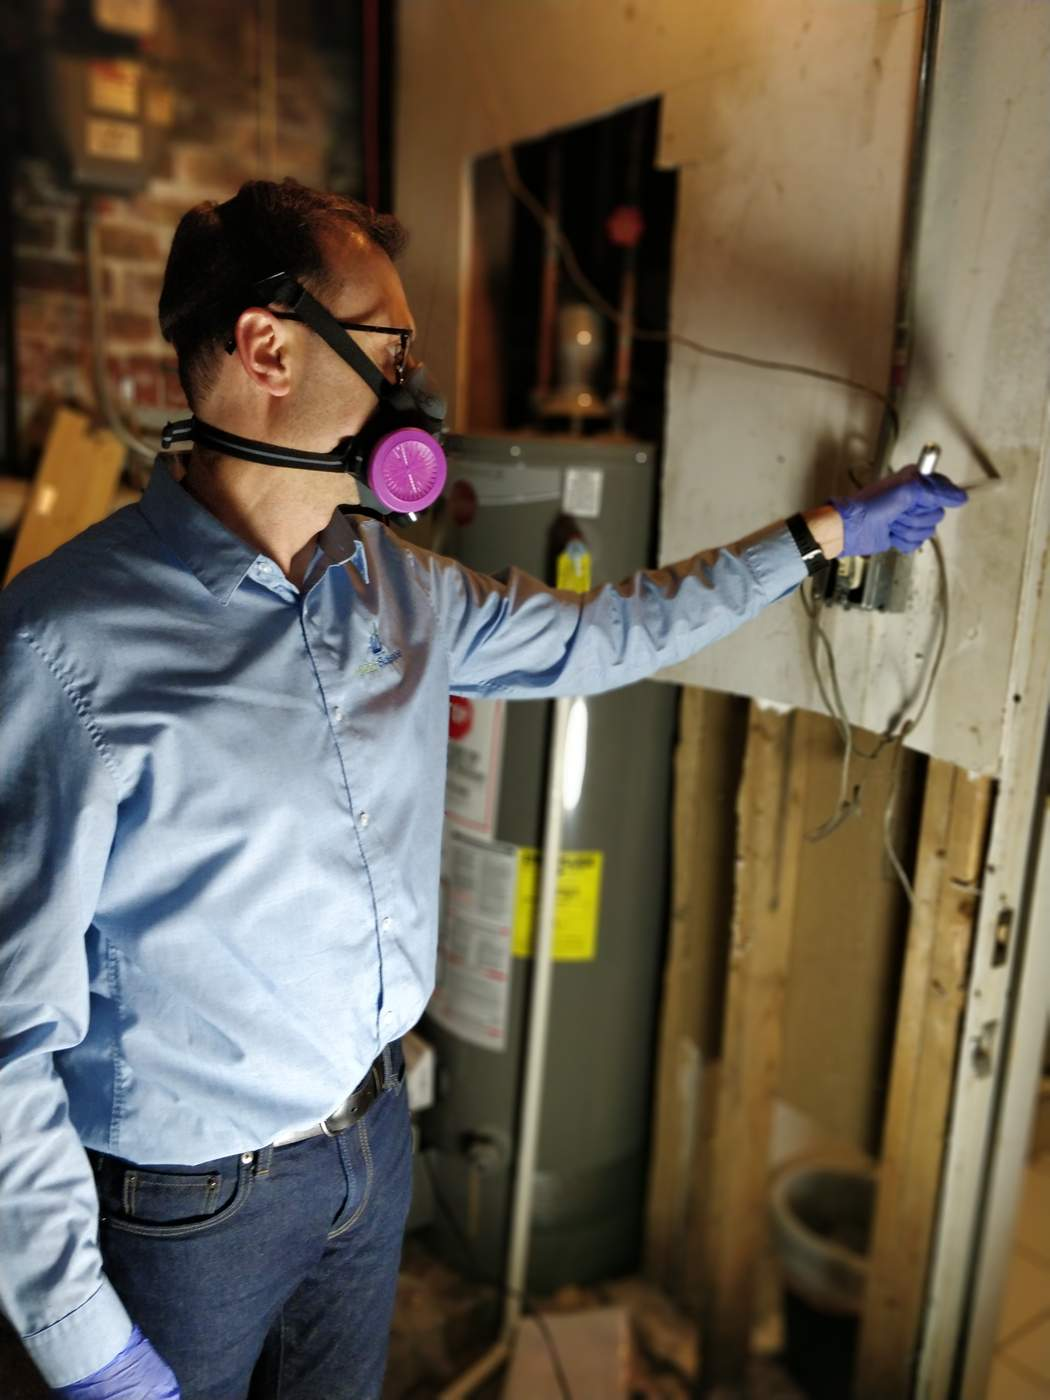 Environmental consultant Ian Cull inspects for asbestos at a client's home (Courtesy Indoor Sciences, Inc.).